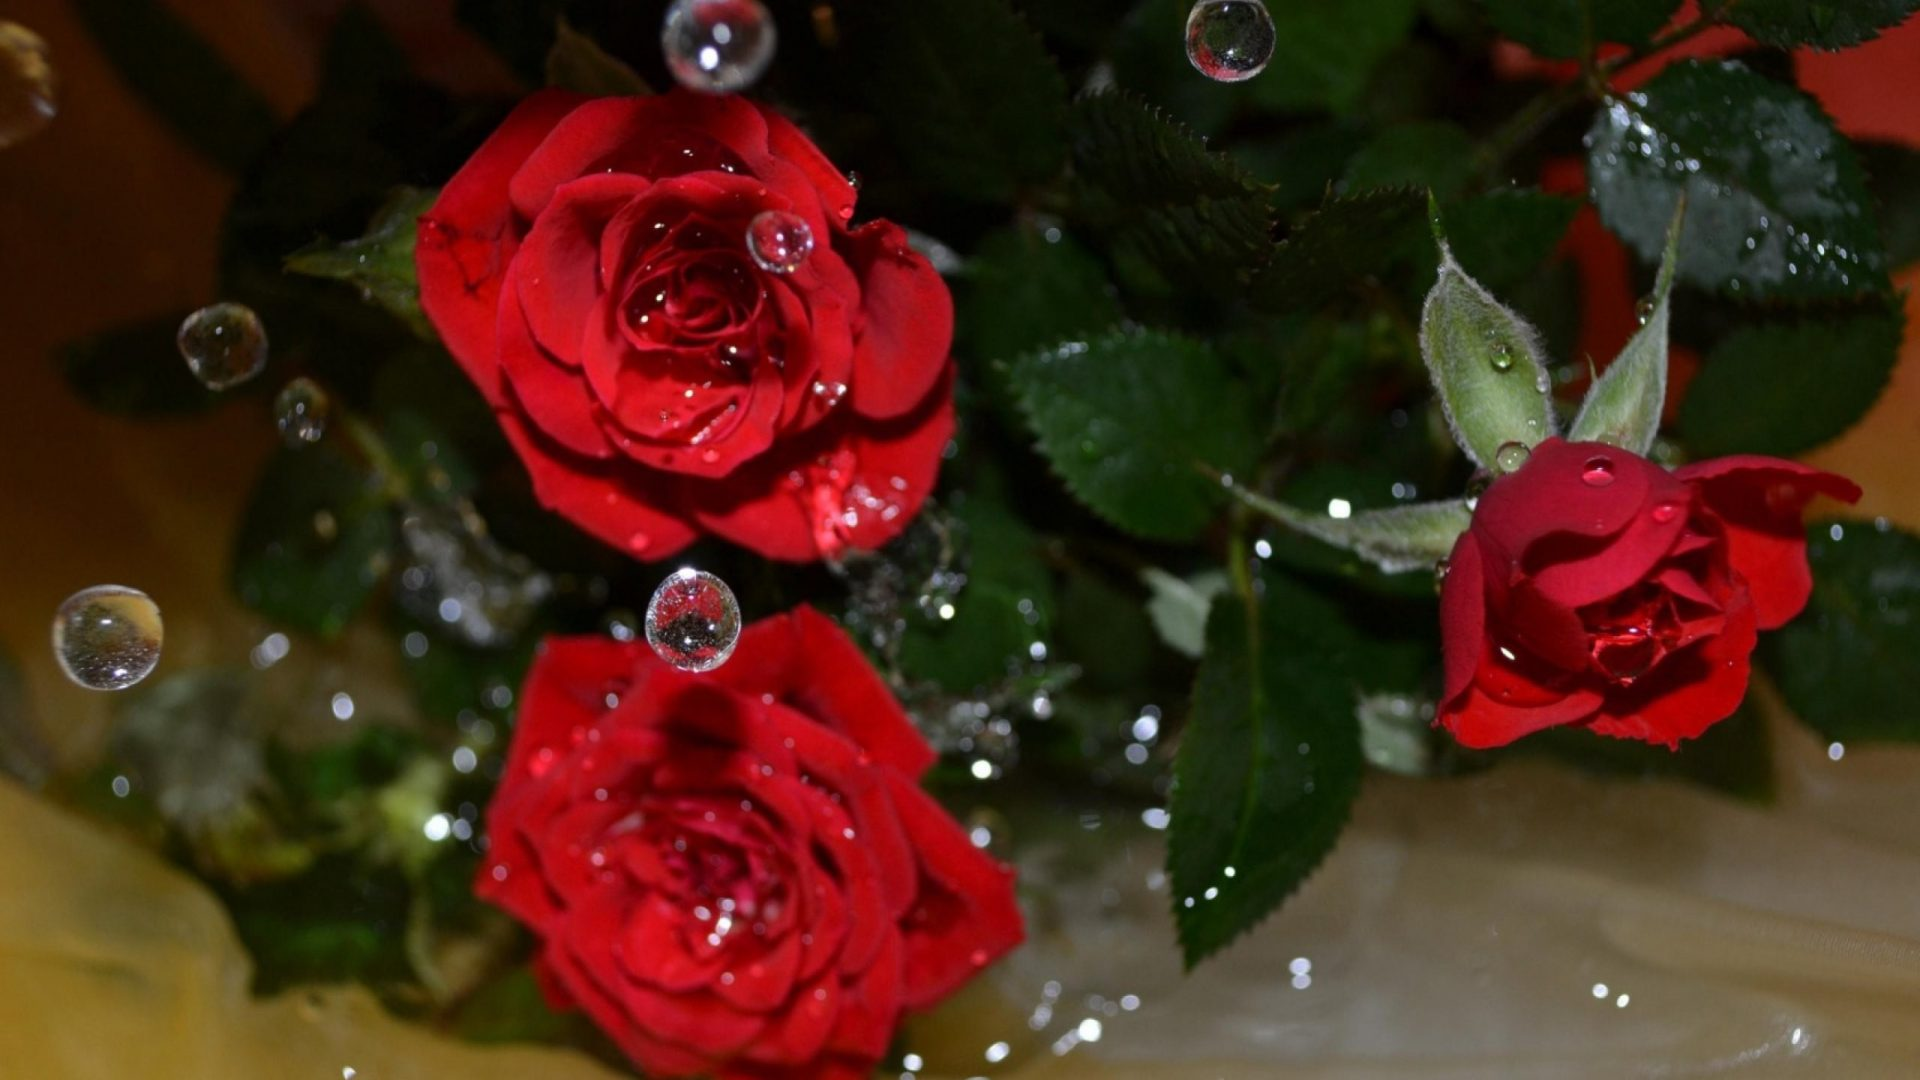 Nature Red Roses Earth Petals Rose Flowers Free Desktop - Flowers With Water Droplets Hd , HD Wallpaper & Backgrounds